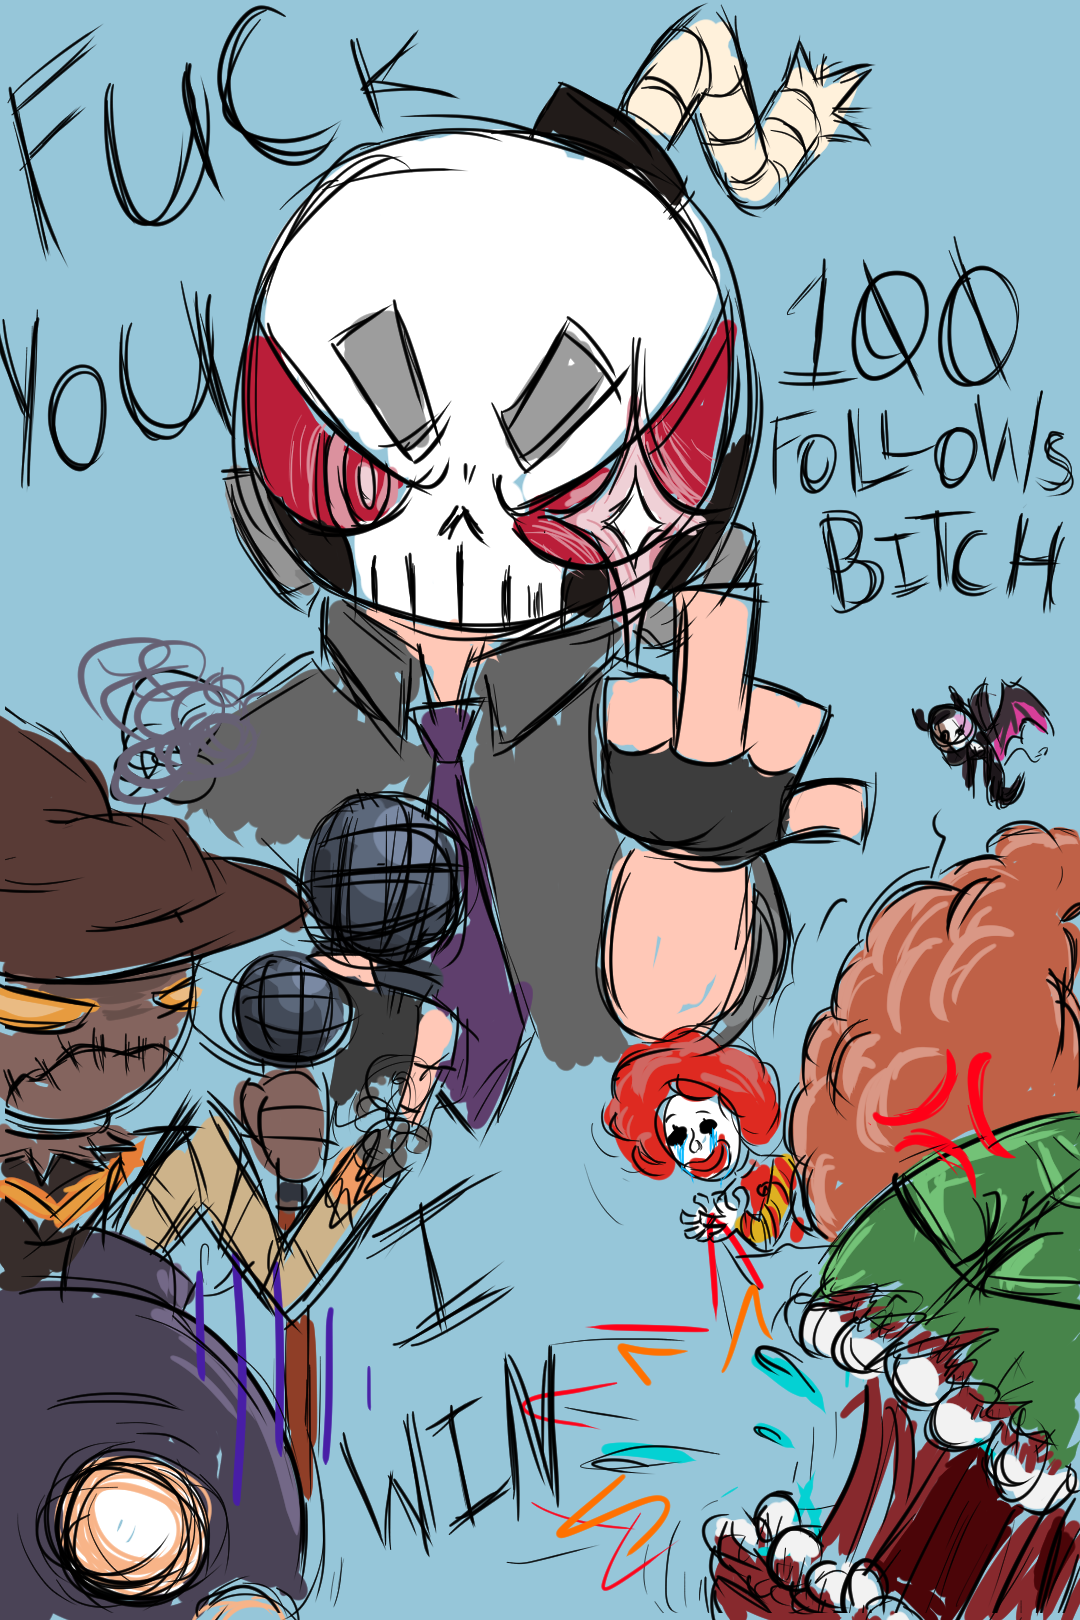 Art I Made for my 100 Follower Milestone on Twitch :]